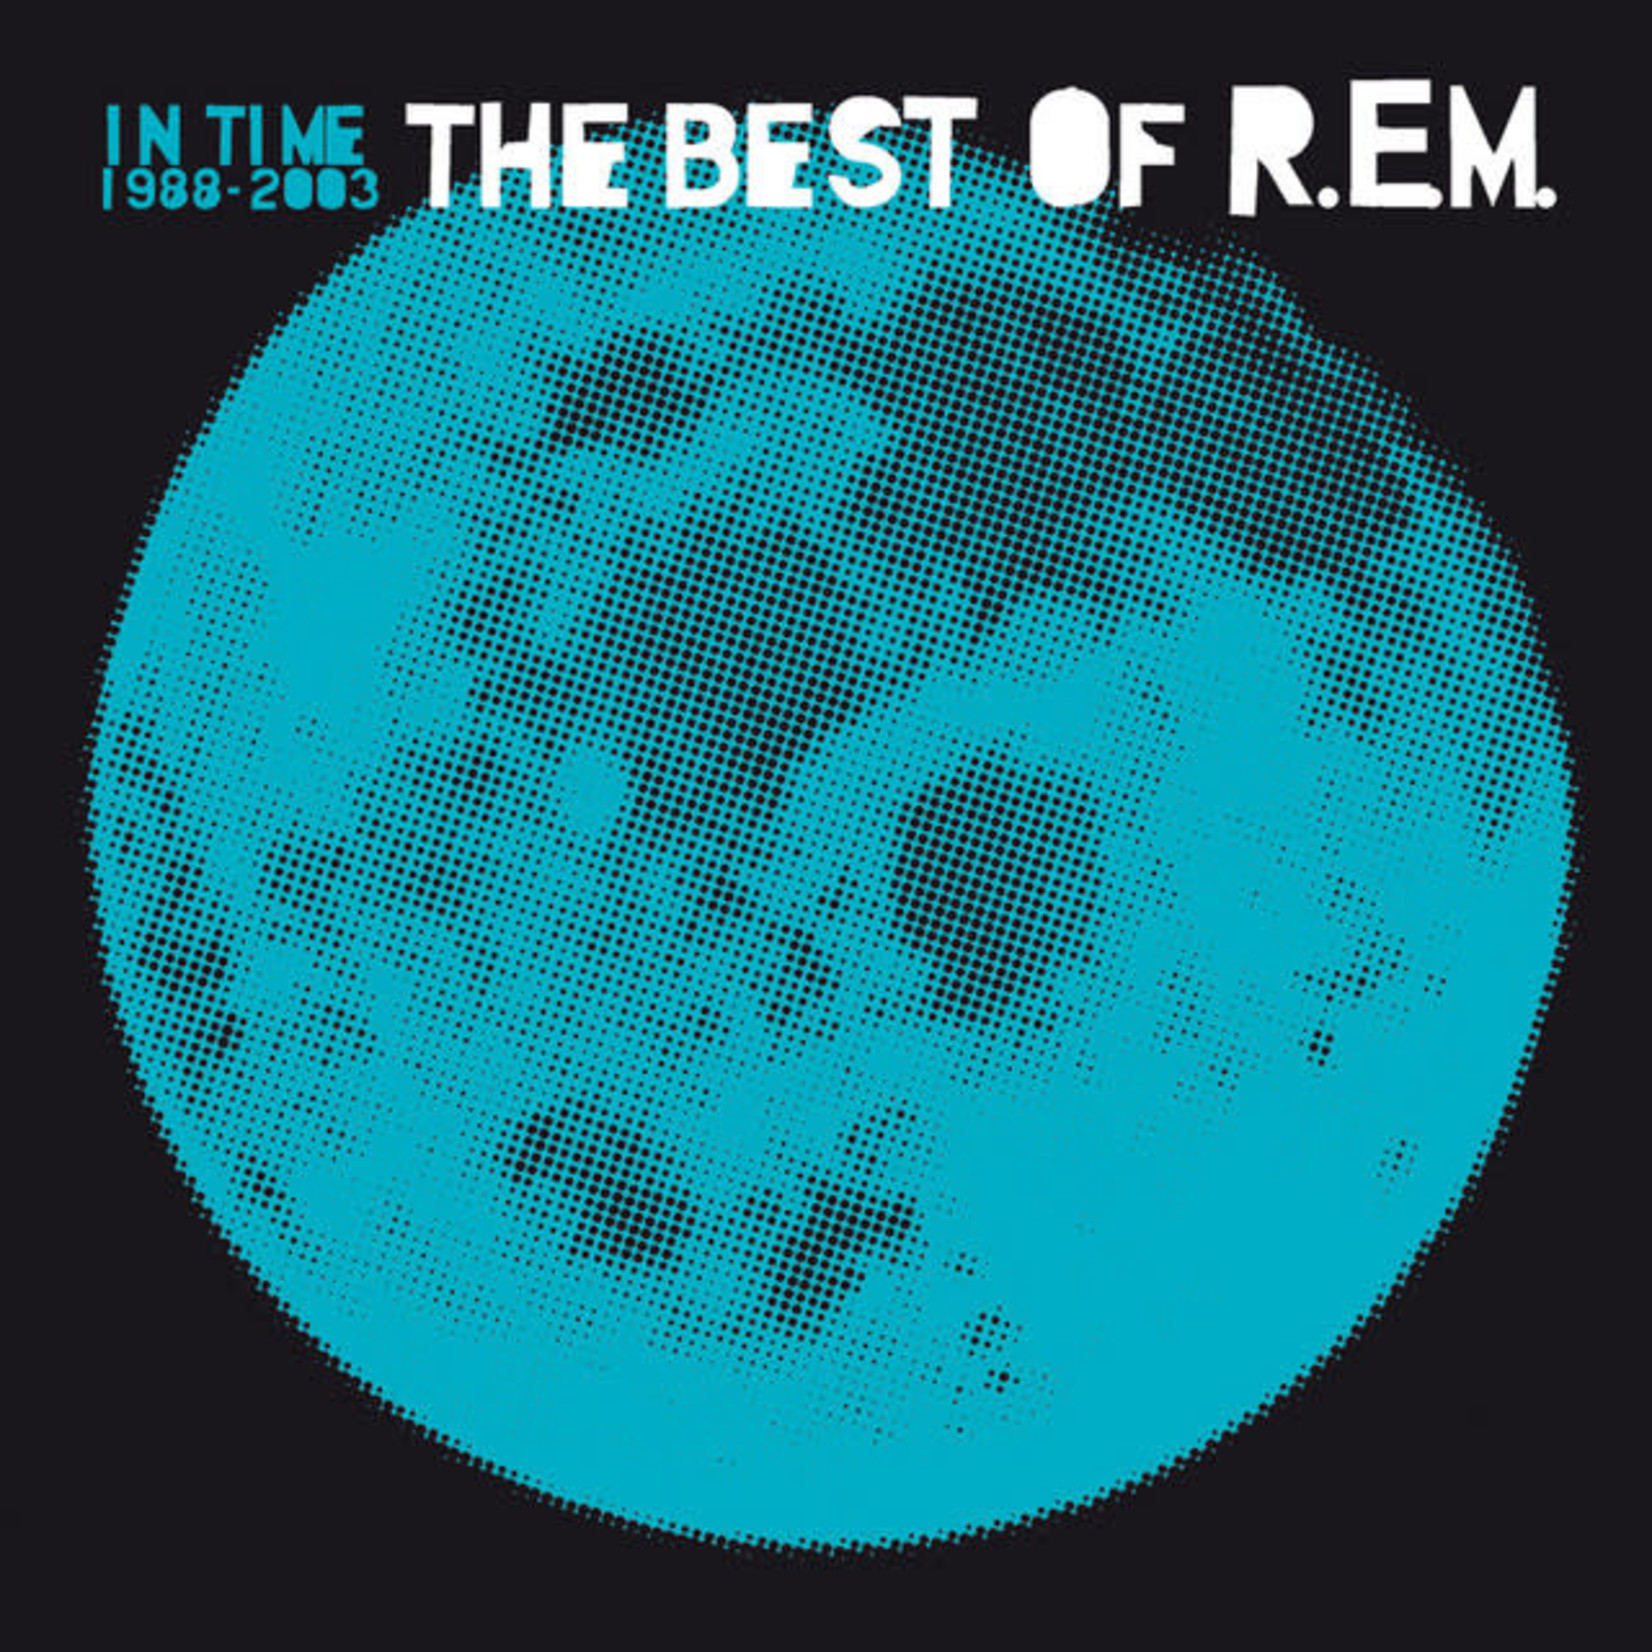 Vinyl R.E.M. - In Time:  The Best of REM